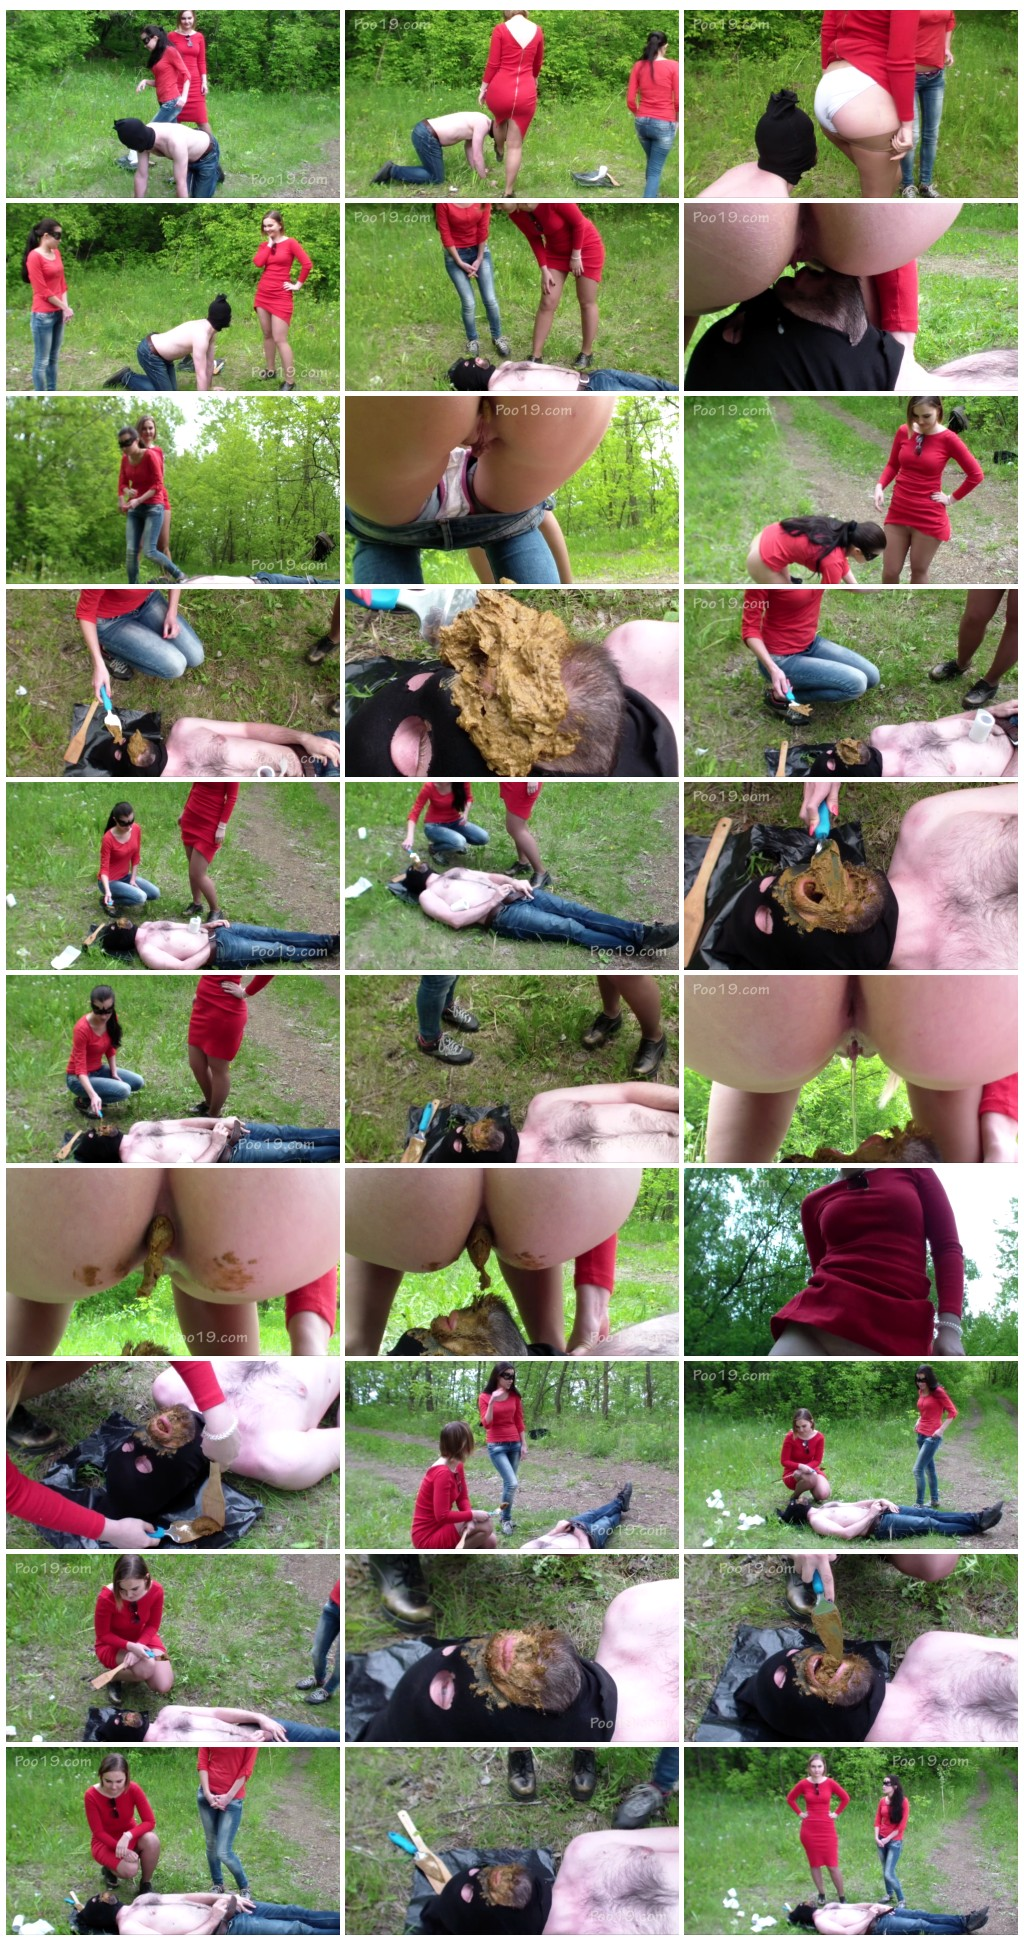 [Poo19.com - ScatShop.com] SmellyMilana - 2 girls used live toilet in woods  [Scat, Human Toilet, Humiliation, Toilet Slavery]